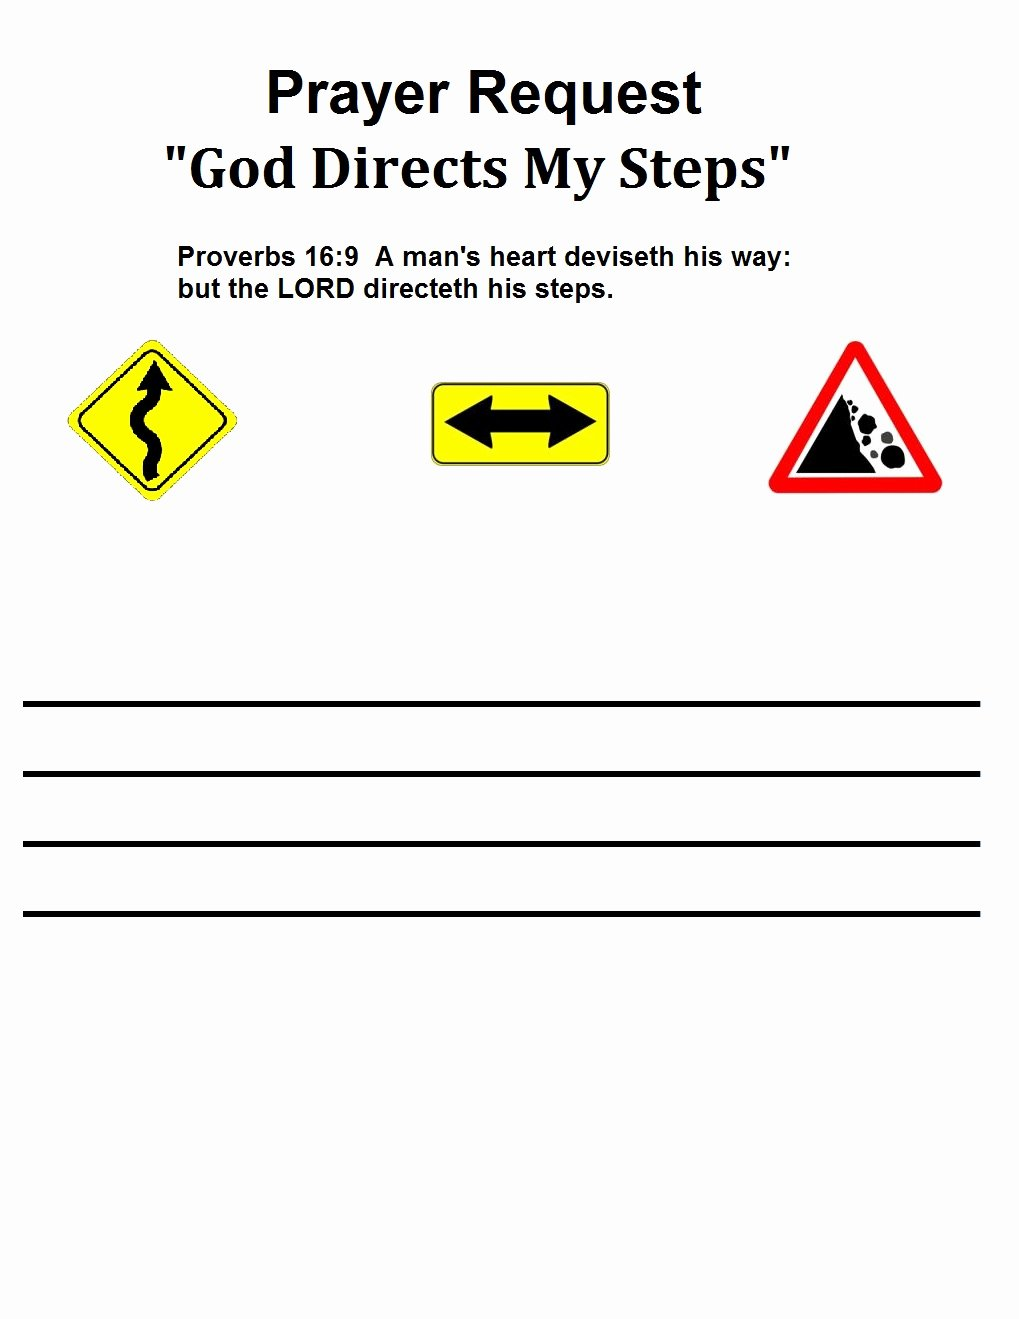 Prayer Request forms Templates Lovely God S Road Signs Lesson